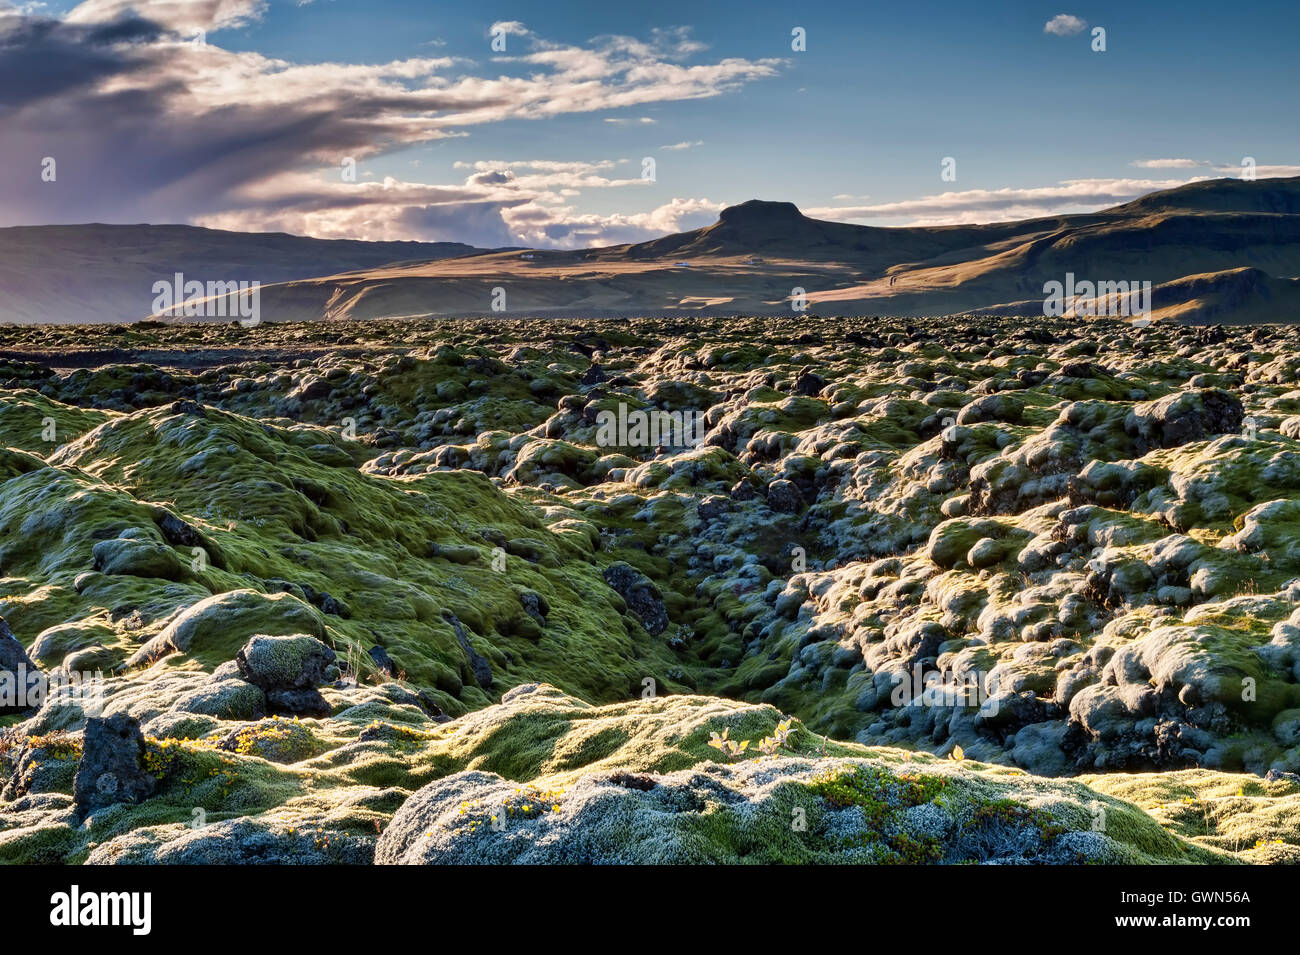 Extensive Moss Covered Volcanic Lava Fields, near Vik i Myrdal, Southern Iceland - Stock Image